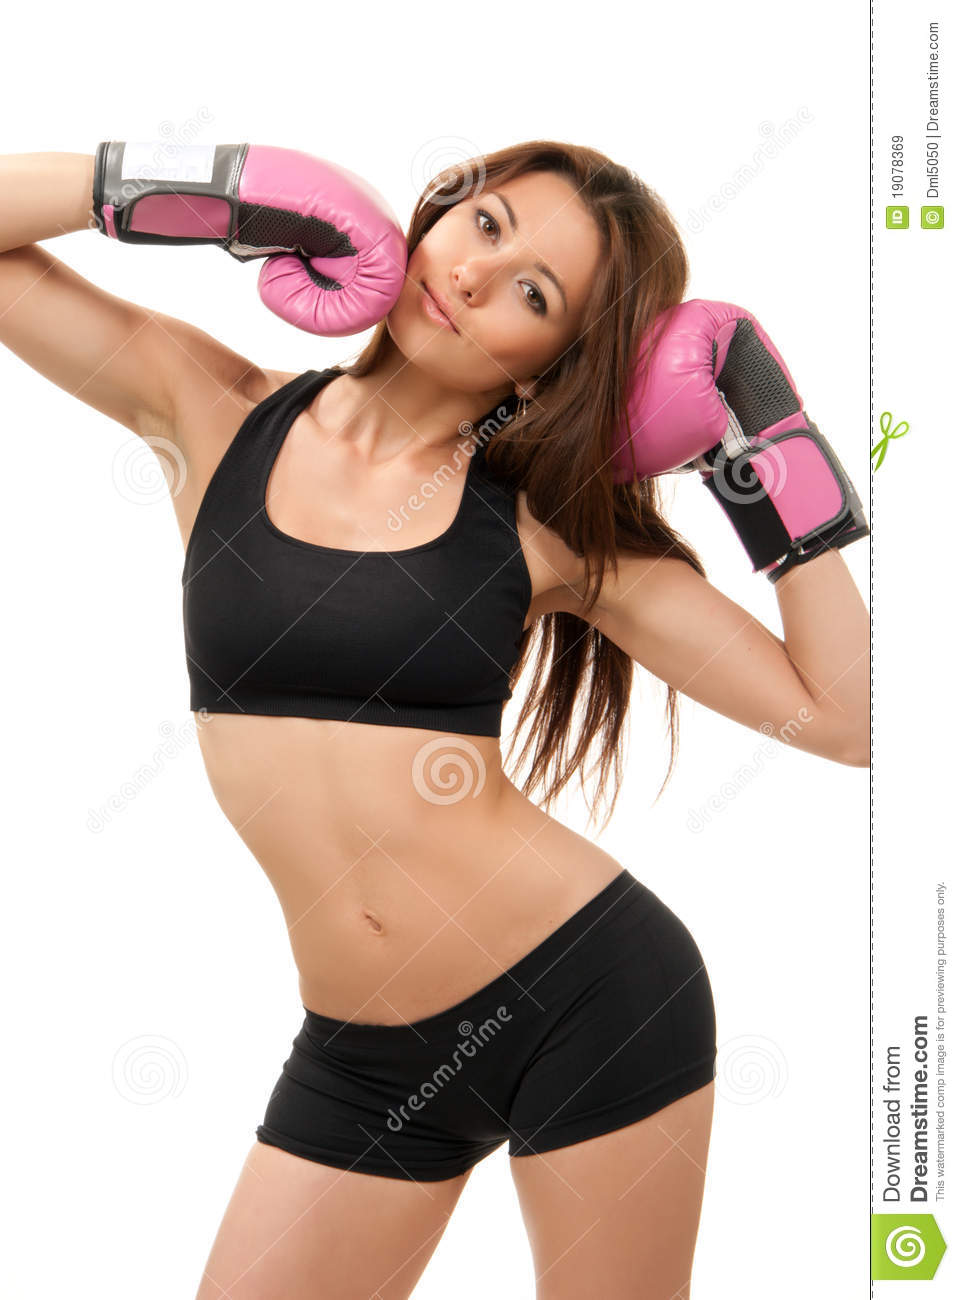 femme sexy de boxe de sport dans les gants roses de cadre image stock image 19078369. Black Bedroom Furniture Sets. Home Design Ideas